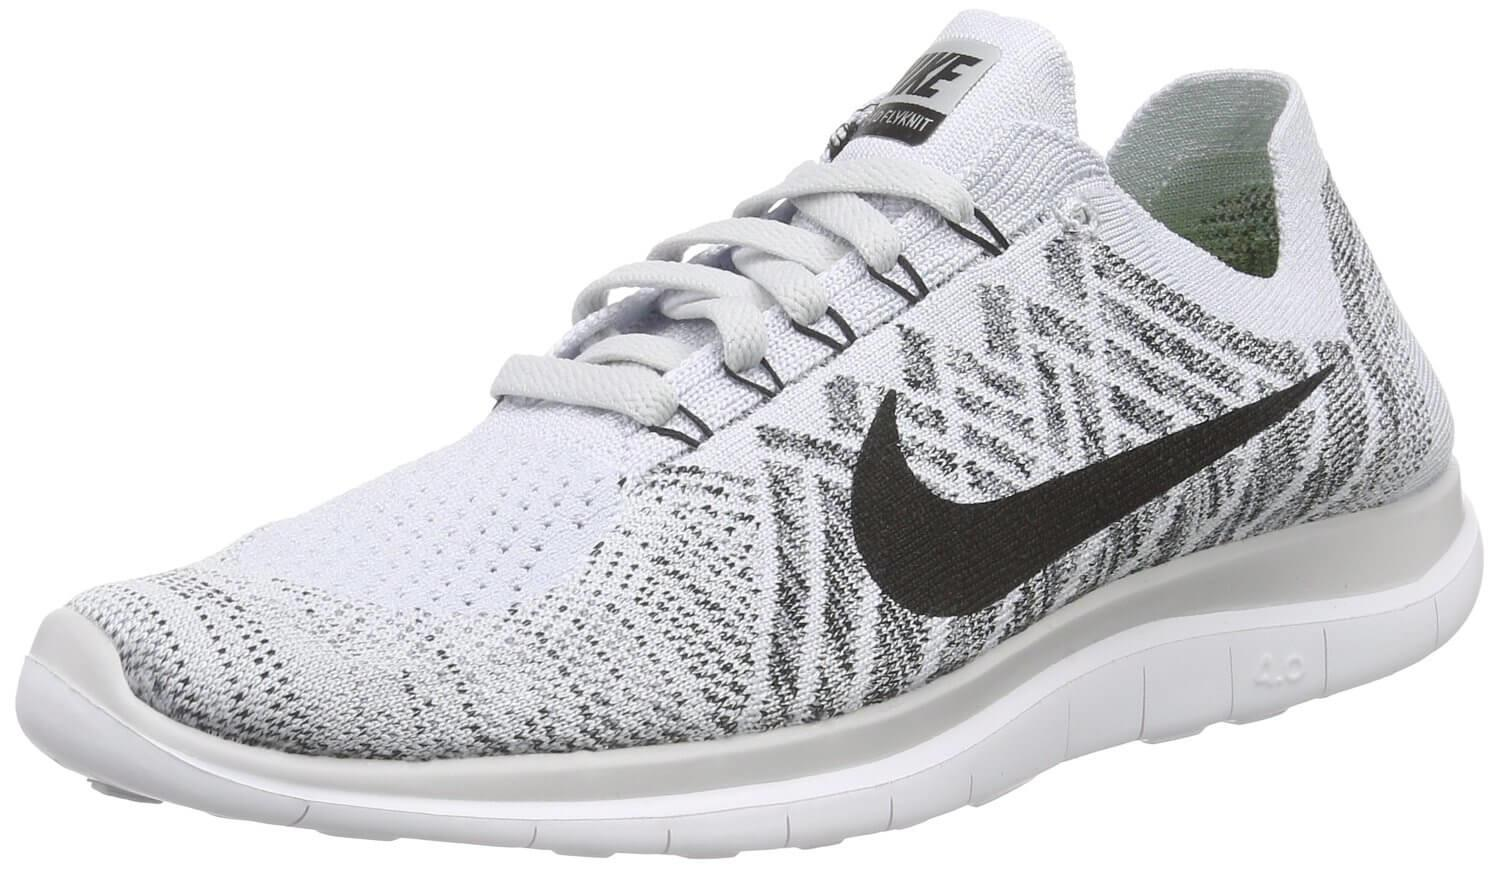 nike free flyknit 4 0 review buy or not in may 2018. Black Bedroom Furniture Sets. Home Design Ideas